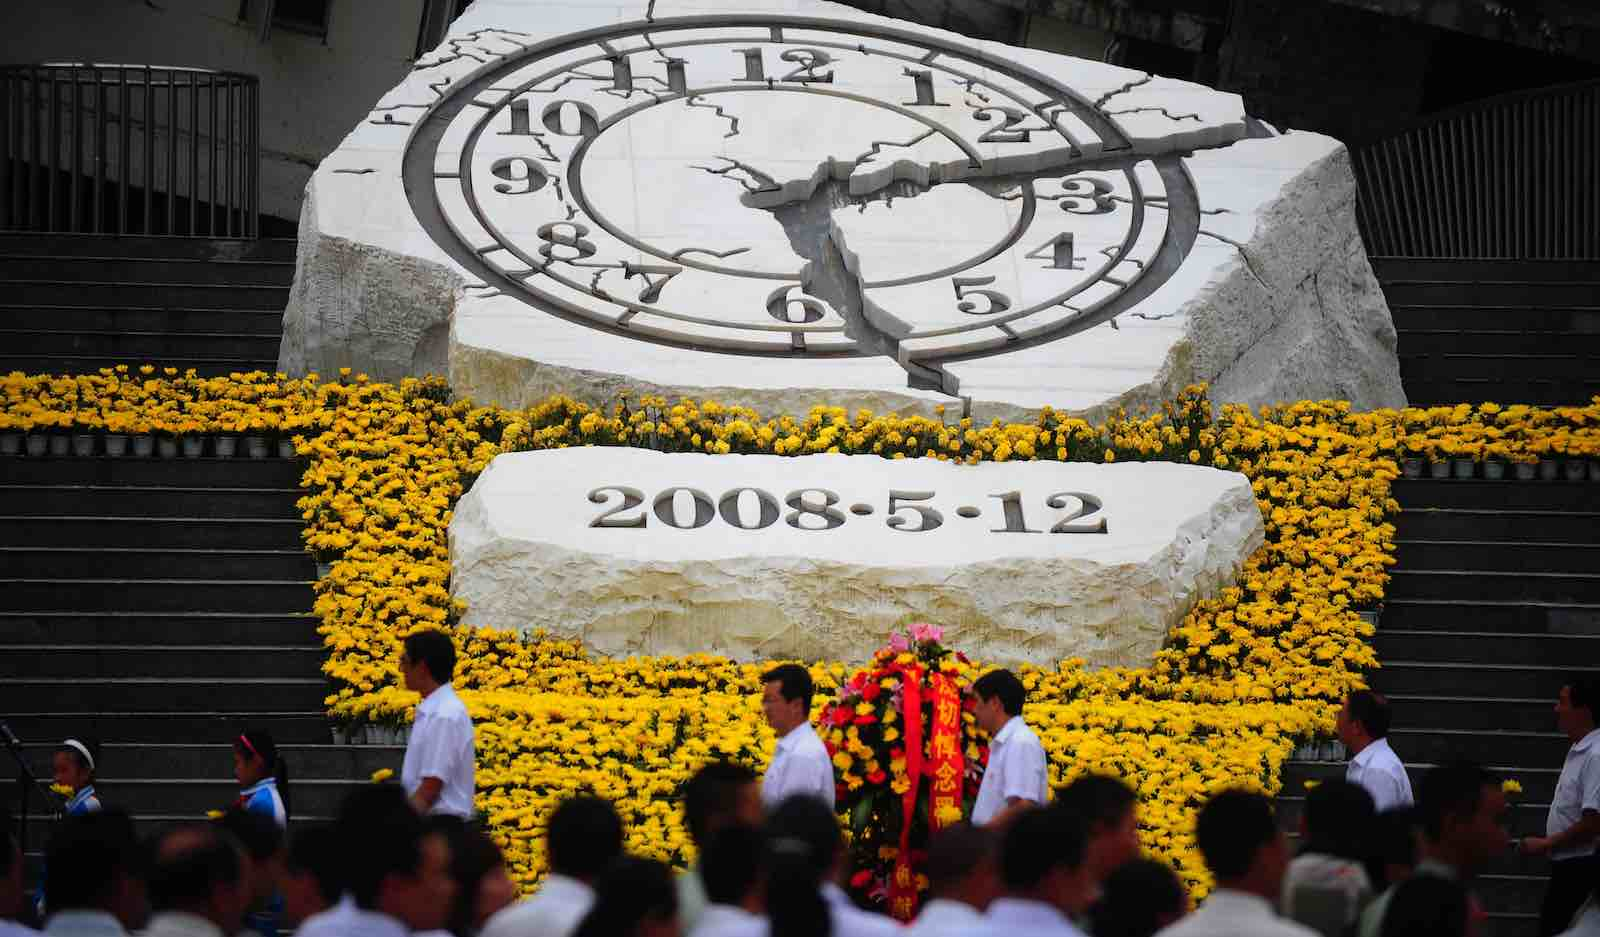 Memorial for victims of the 2008 Wenchuan earthquake (Photo: VCG via Getty)